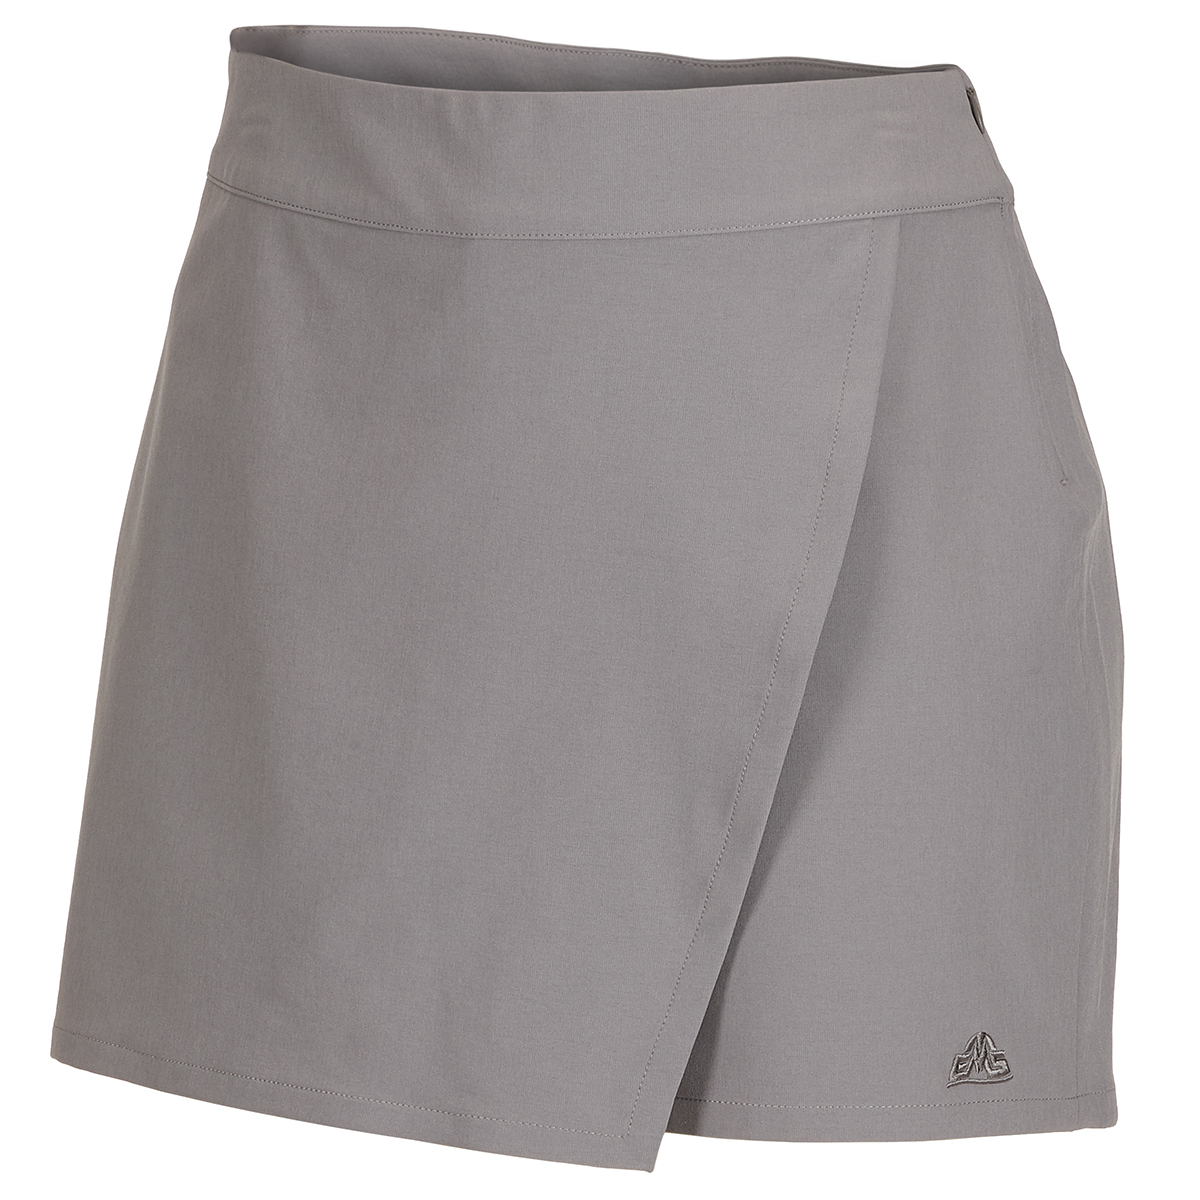 Ems Women's Aspire Skort - Black, 12